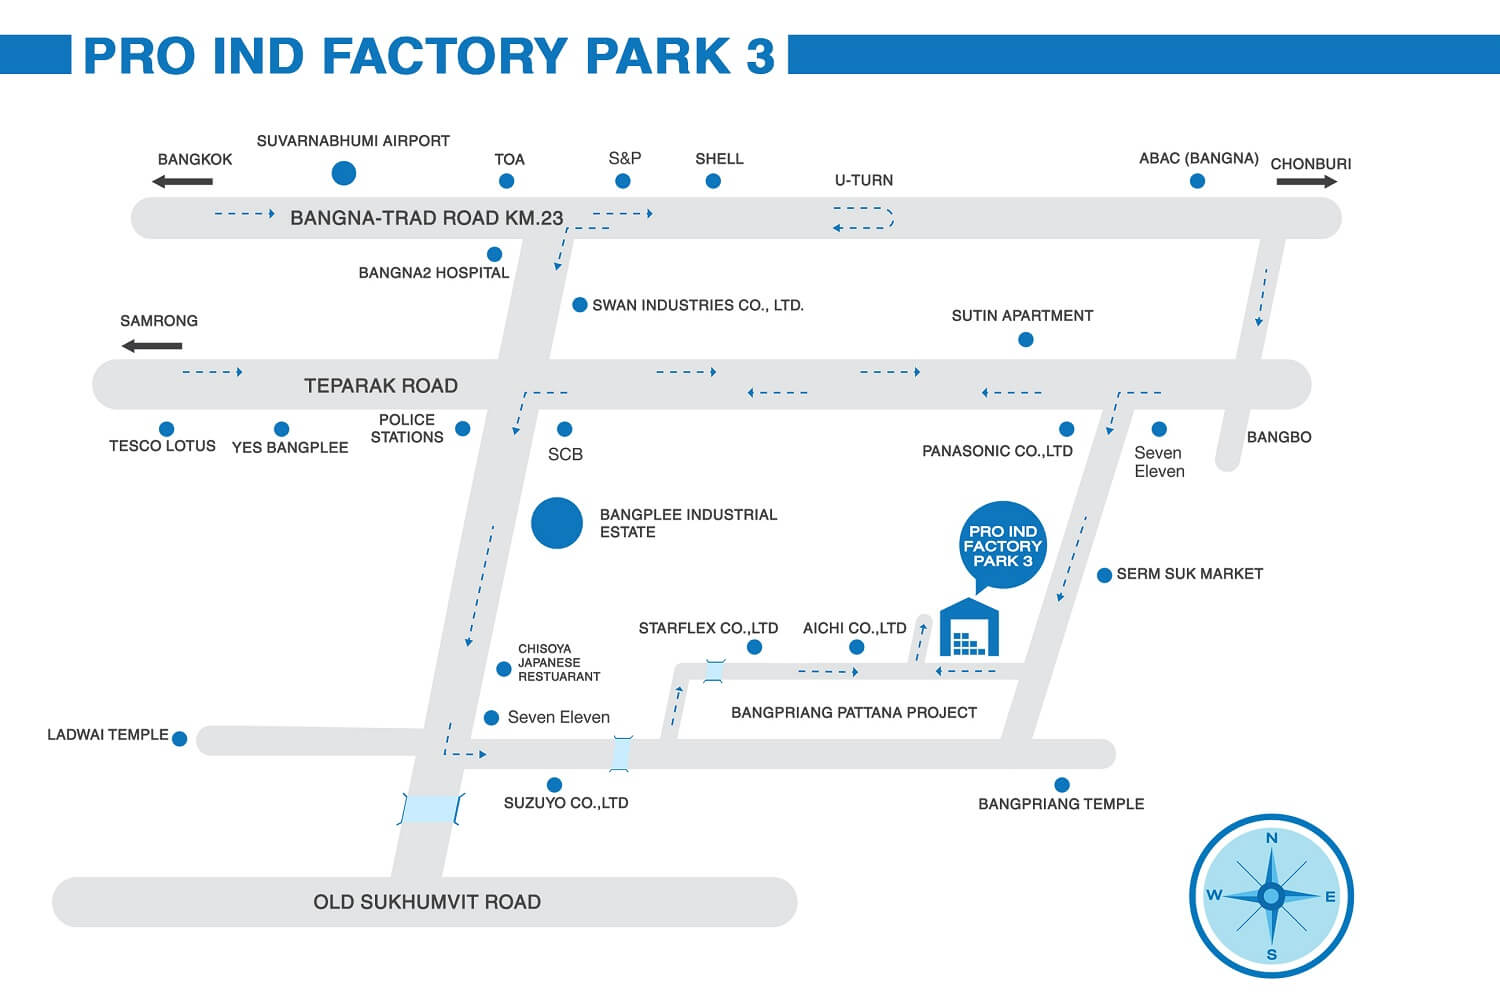 Pro Ind Factory Park 3 Project Map